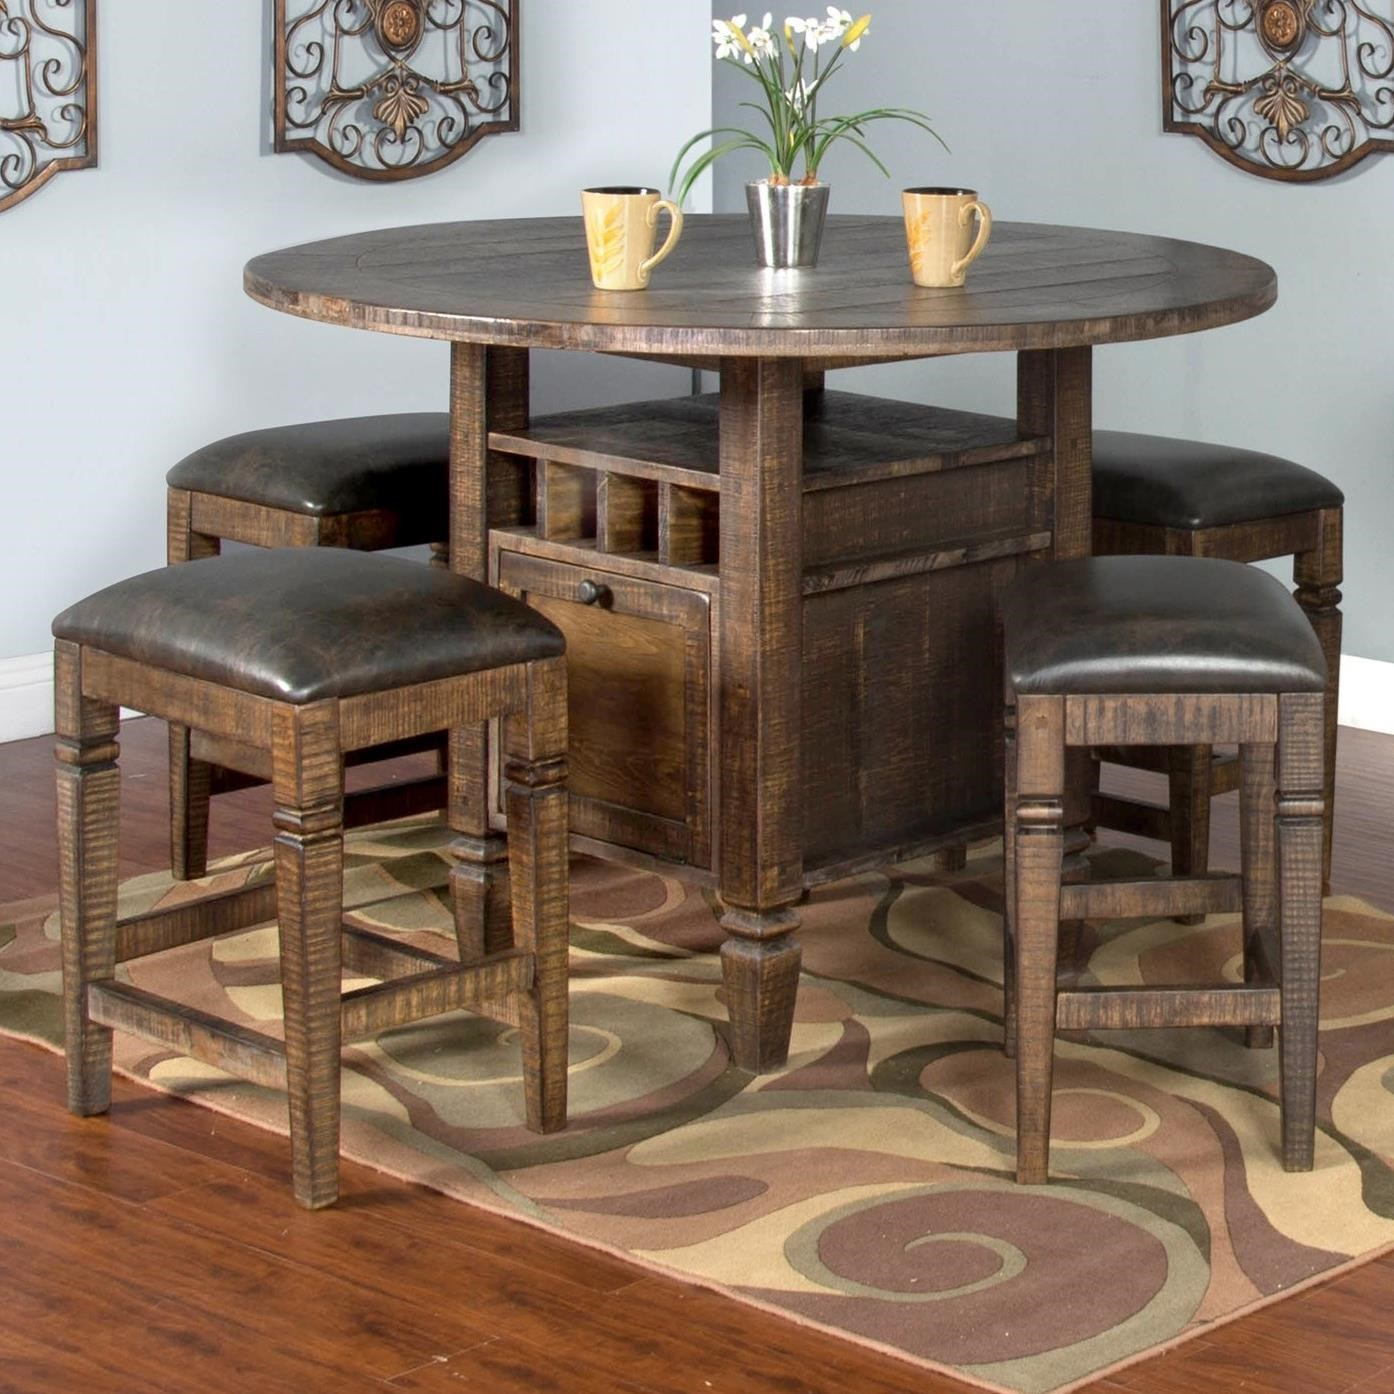 Sunny designs homestead 5 piece counter height table set for Homestead furniture and appliances